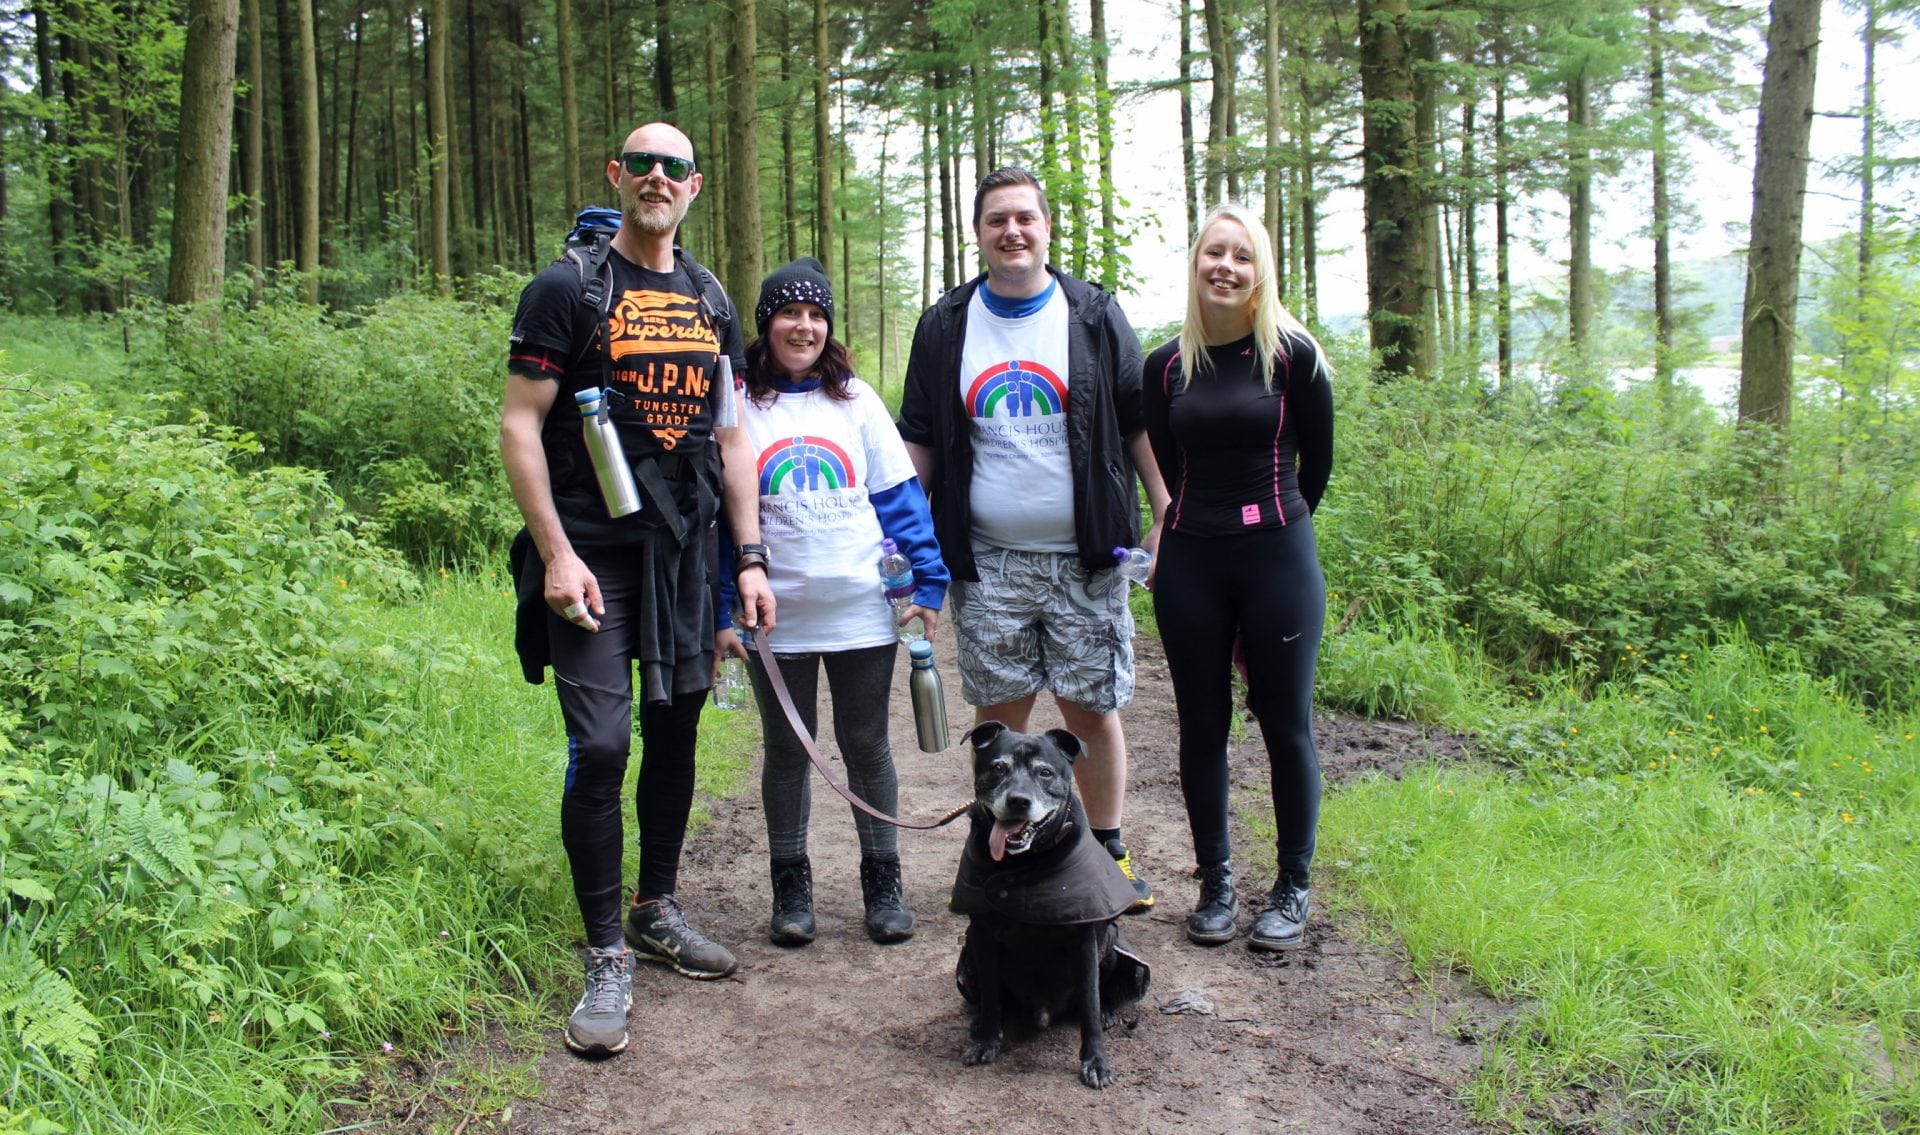 Family and Dog in Macclesfield Forest on the 2017 Cheshire Three Peaks Challenge